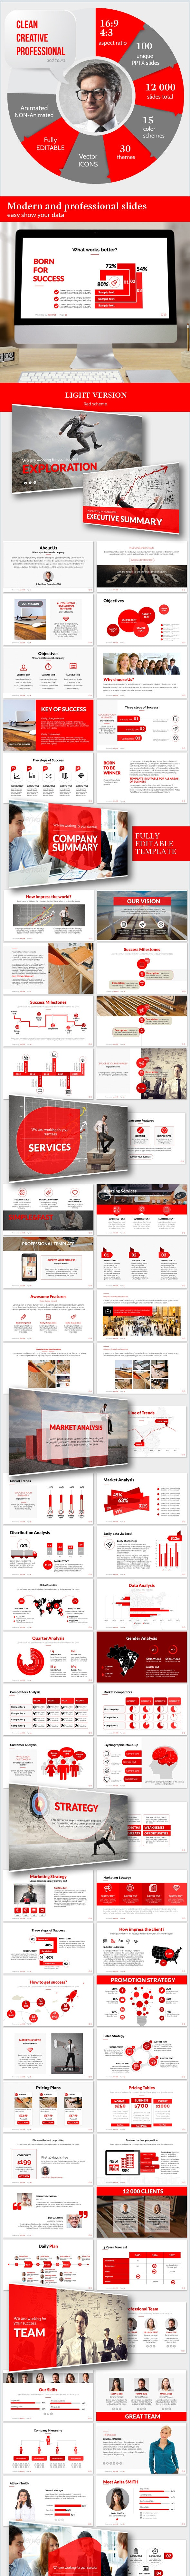 Business Plan StartRight Presentation Template - Business PowerPoint Templates